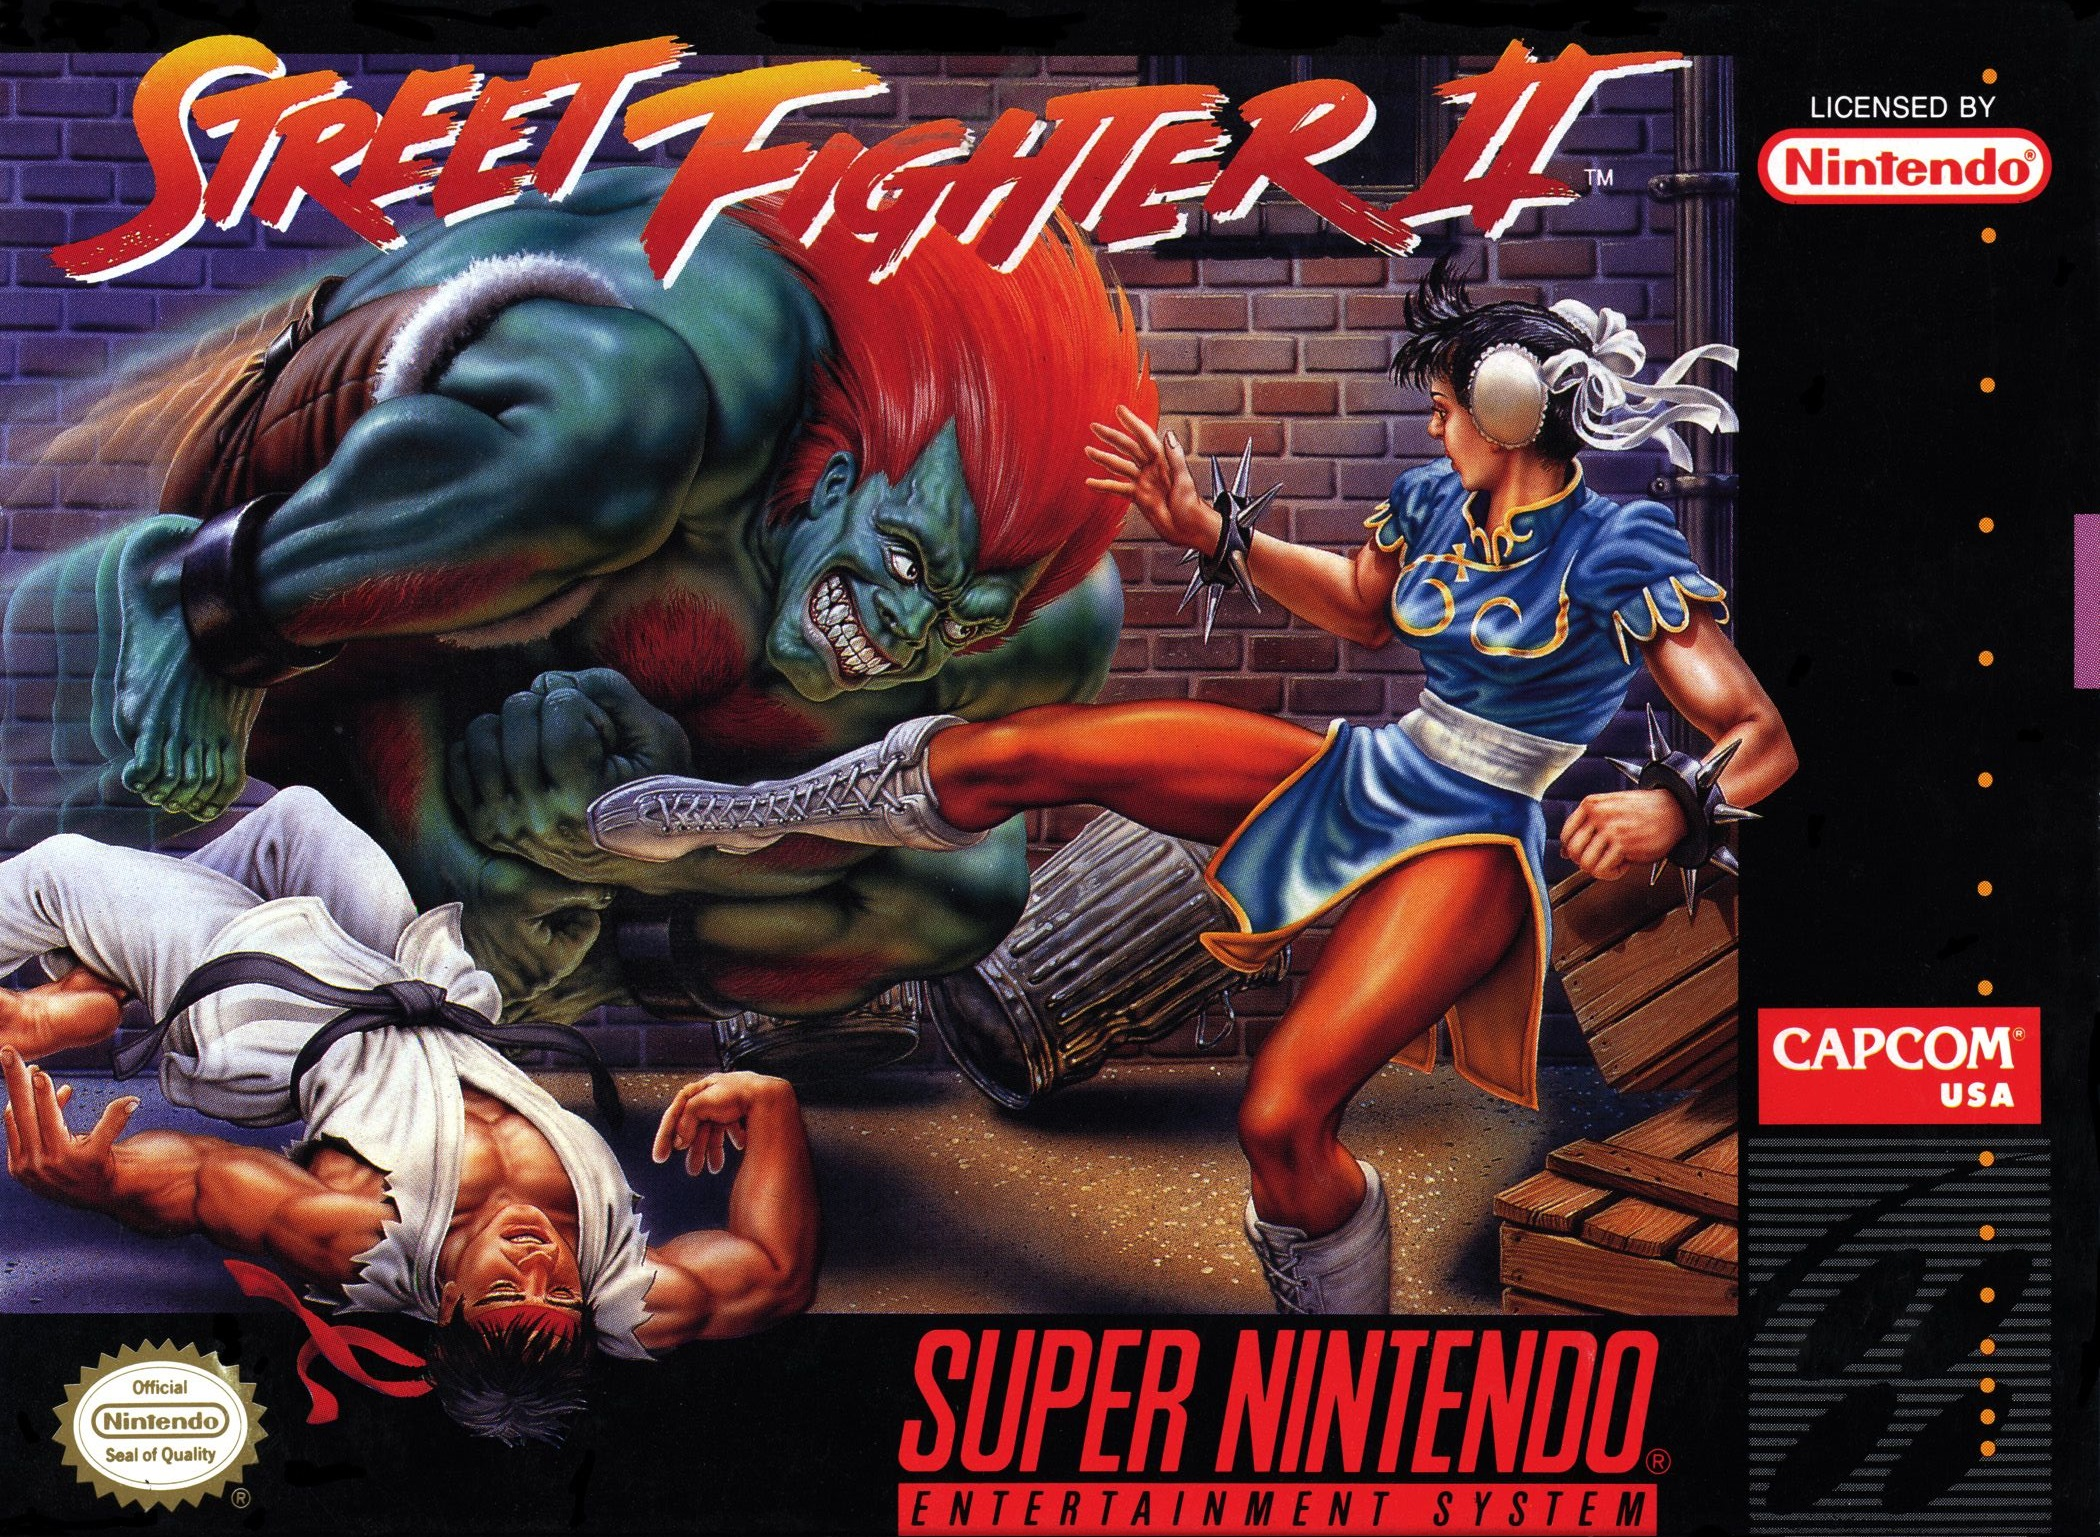 snes_street_fighter_ii_2_p_zov0x5.jpg